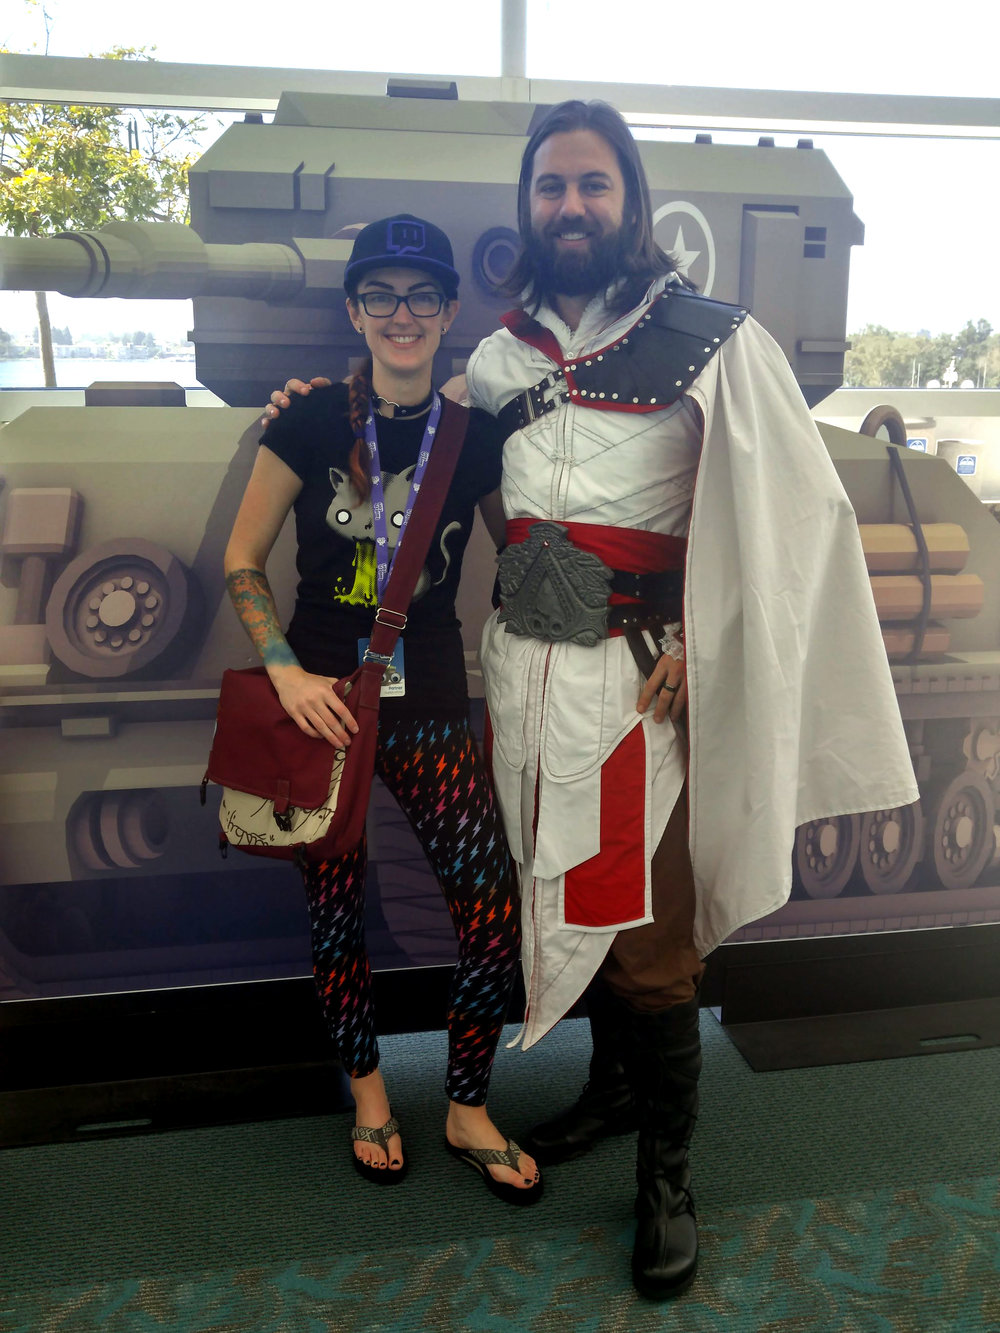 Hanging out with TockCustom before he went on stage for the Cosplay Contest!